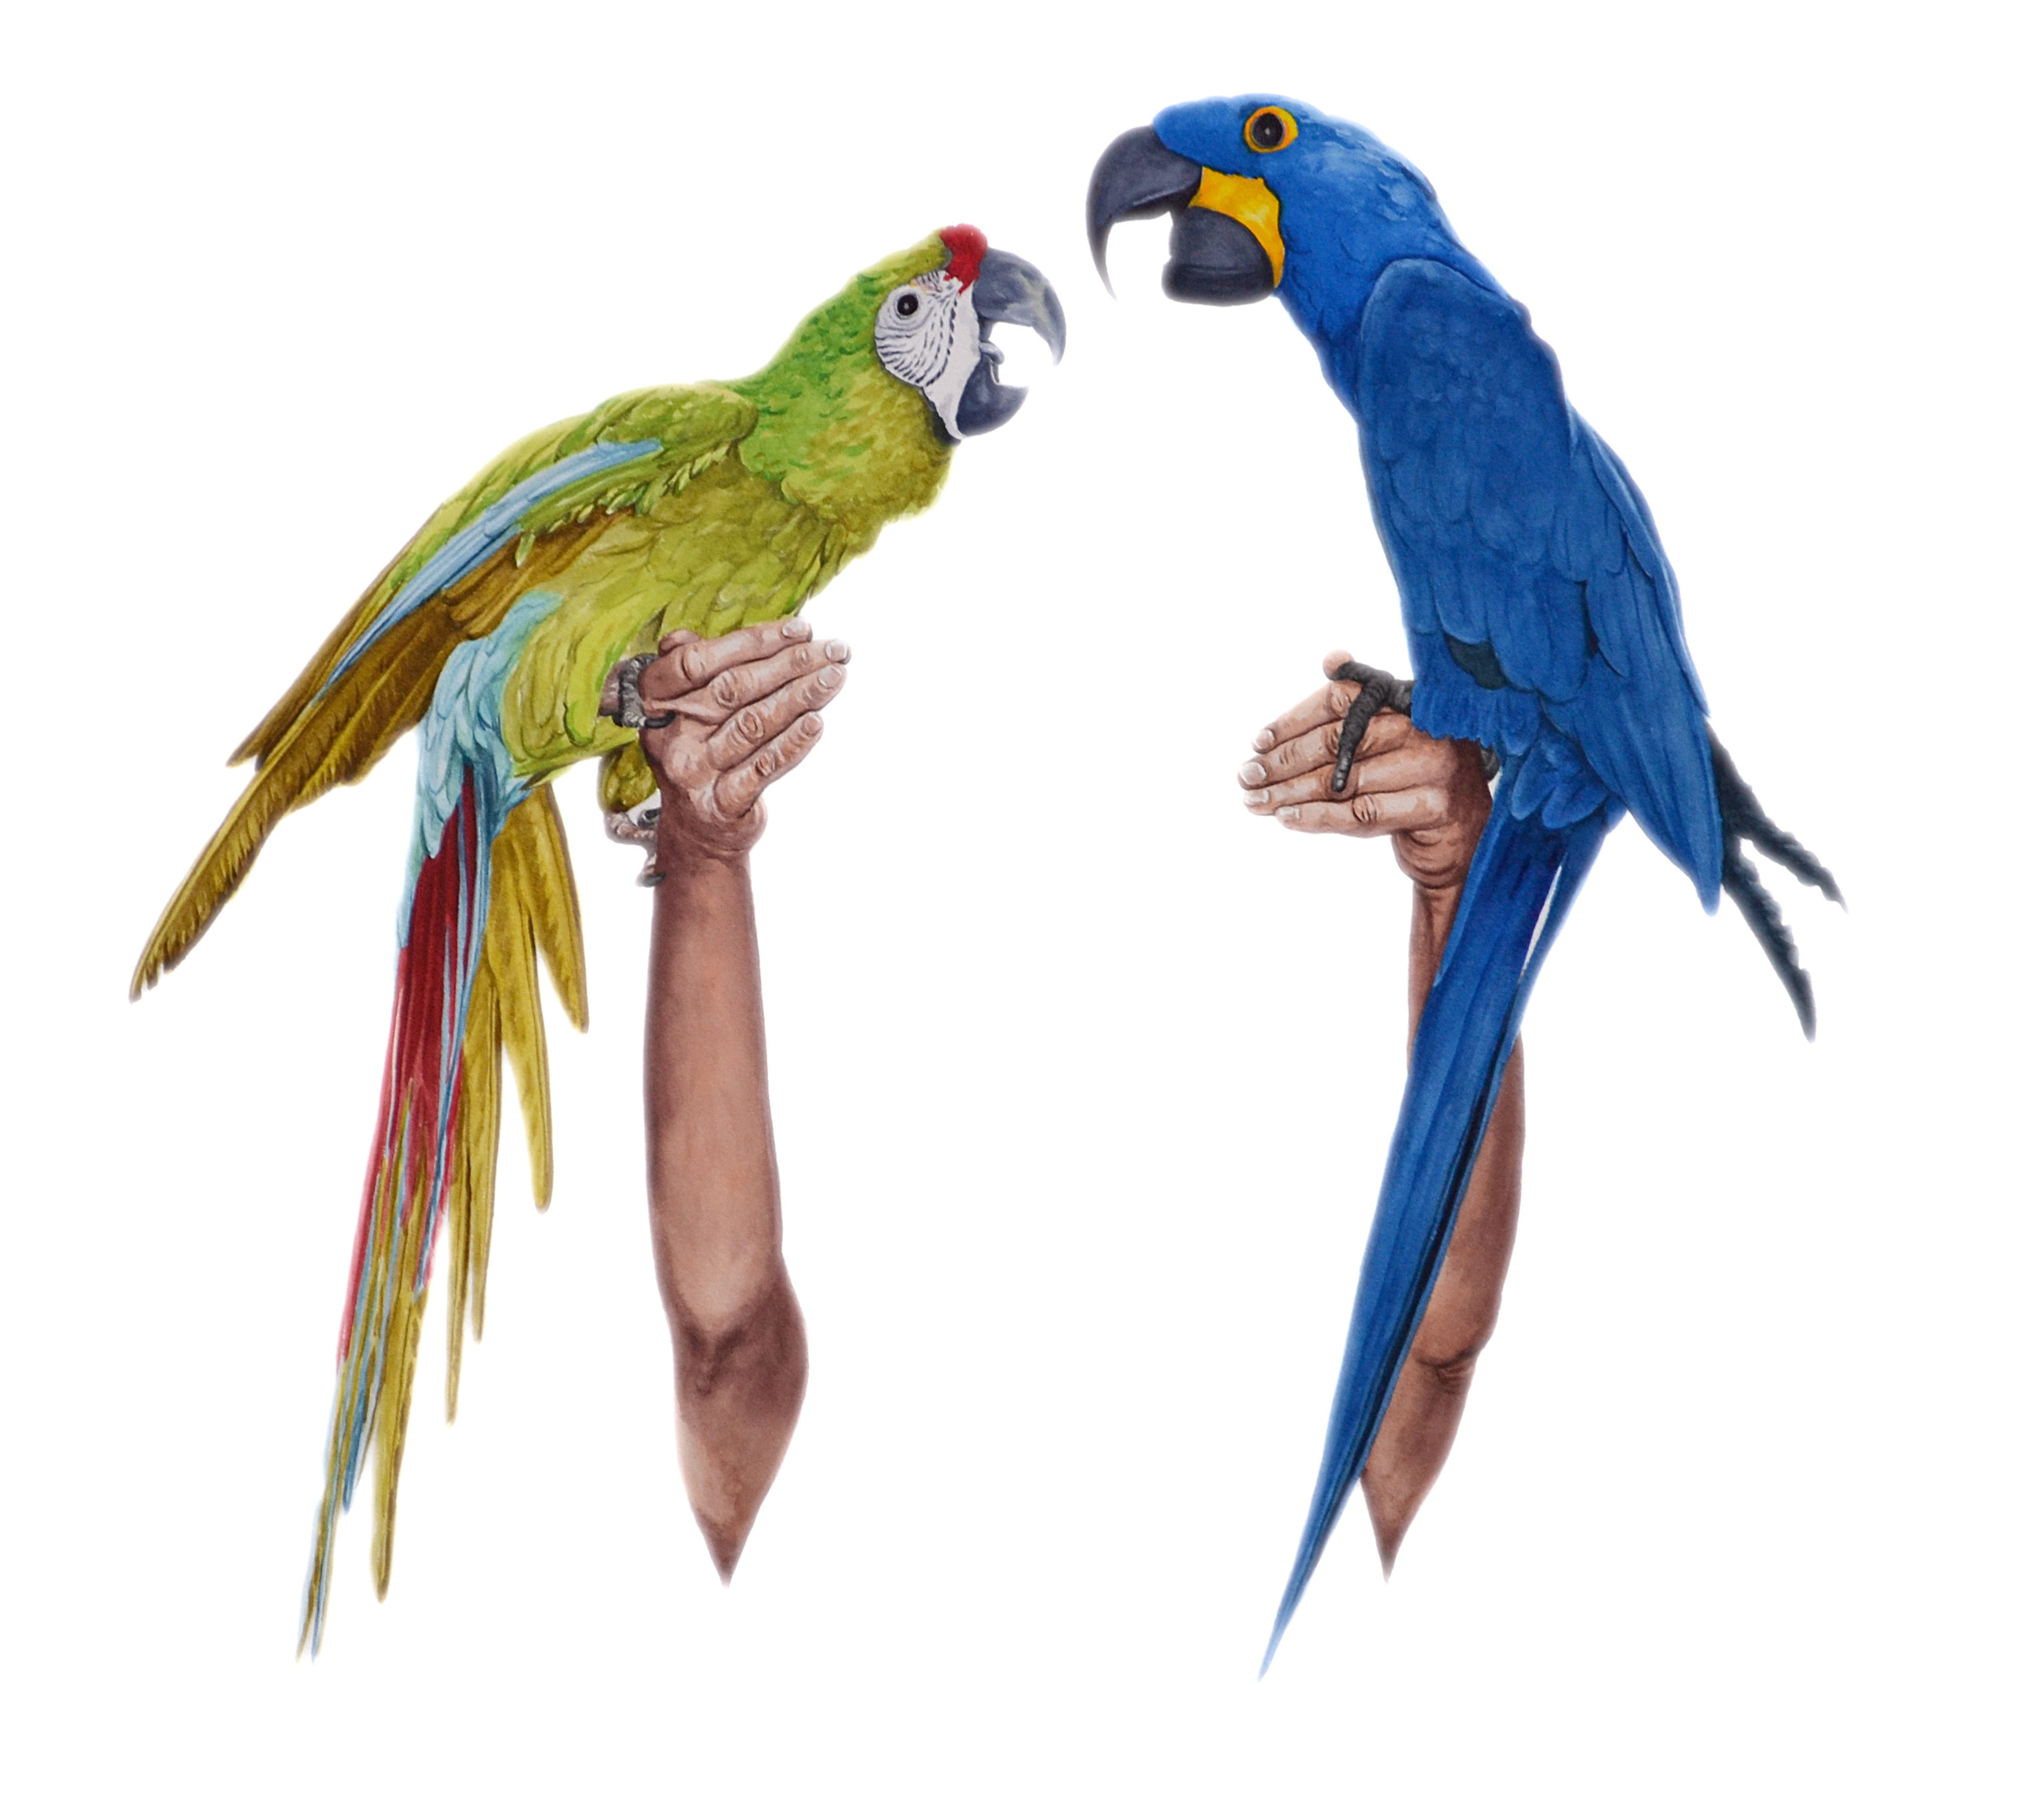 Feathers I (macaws)